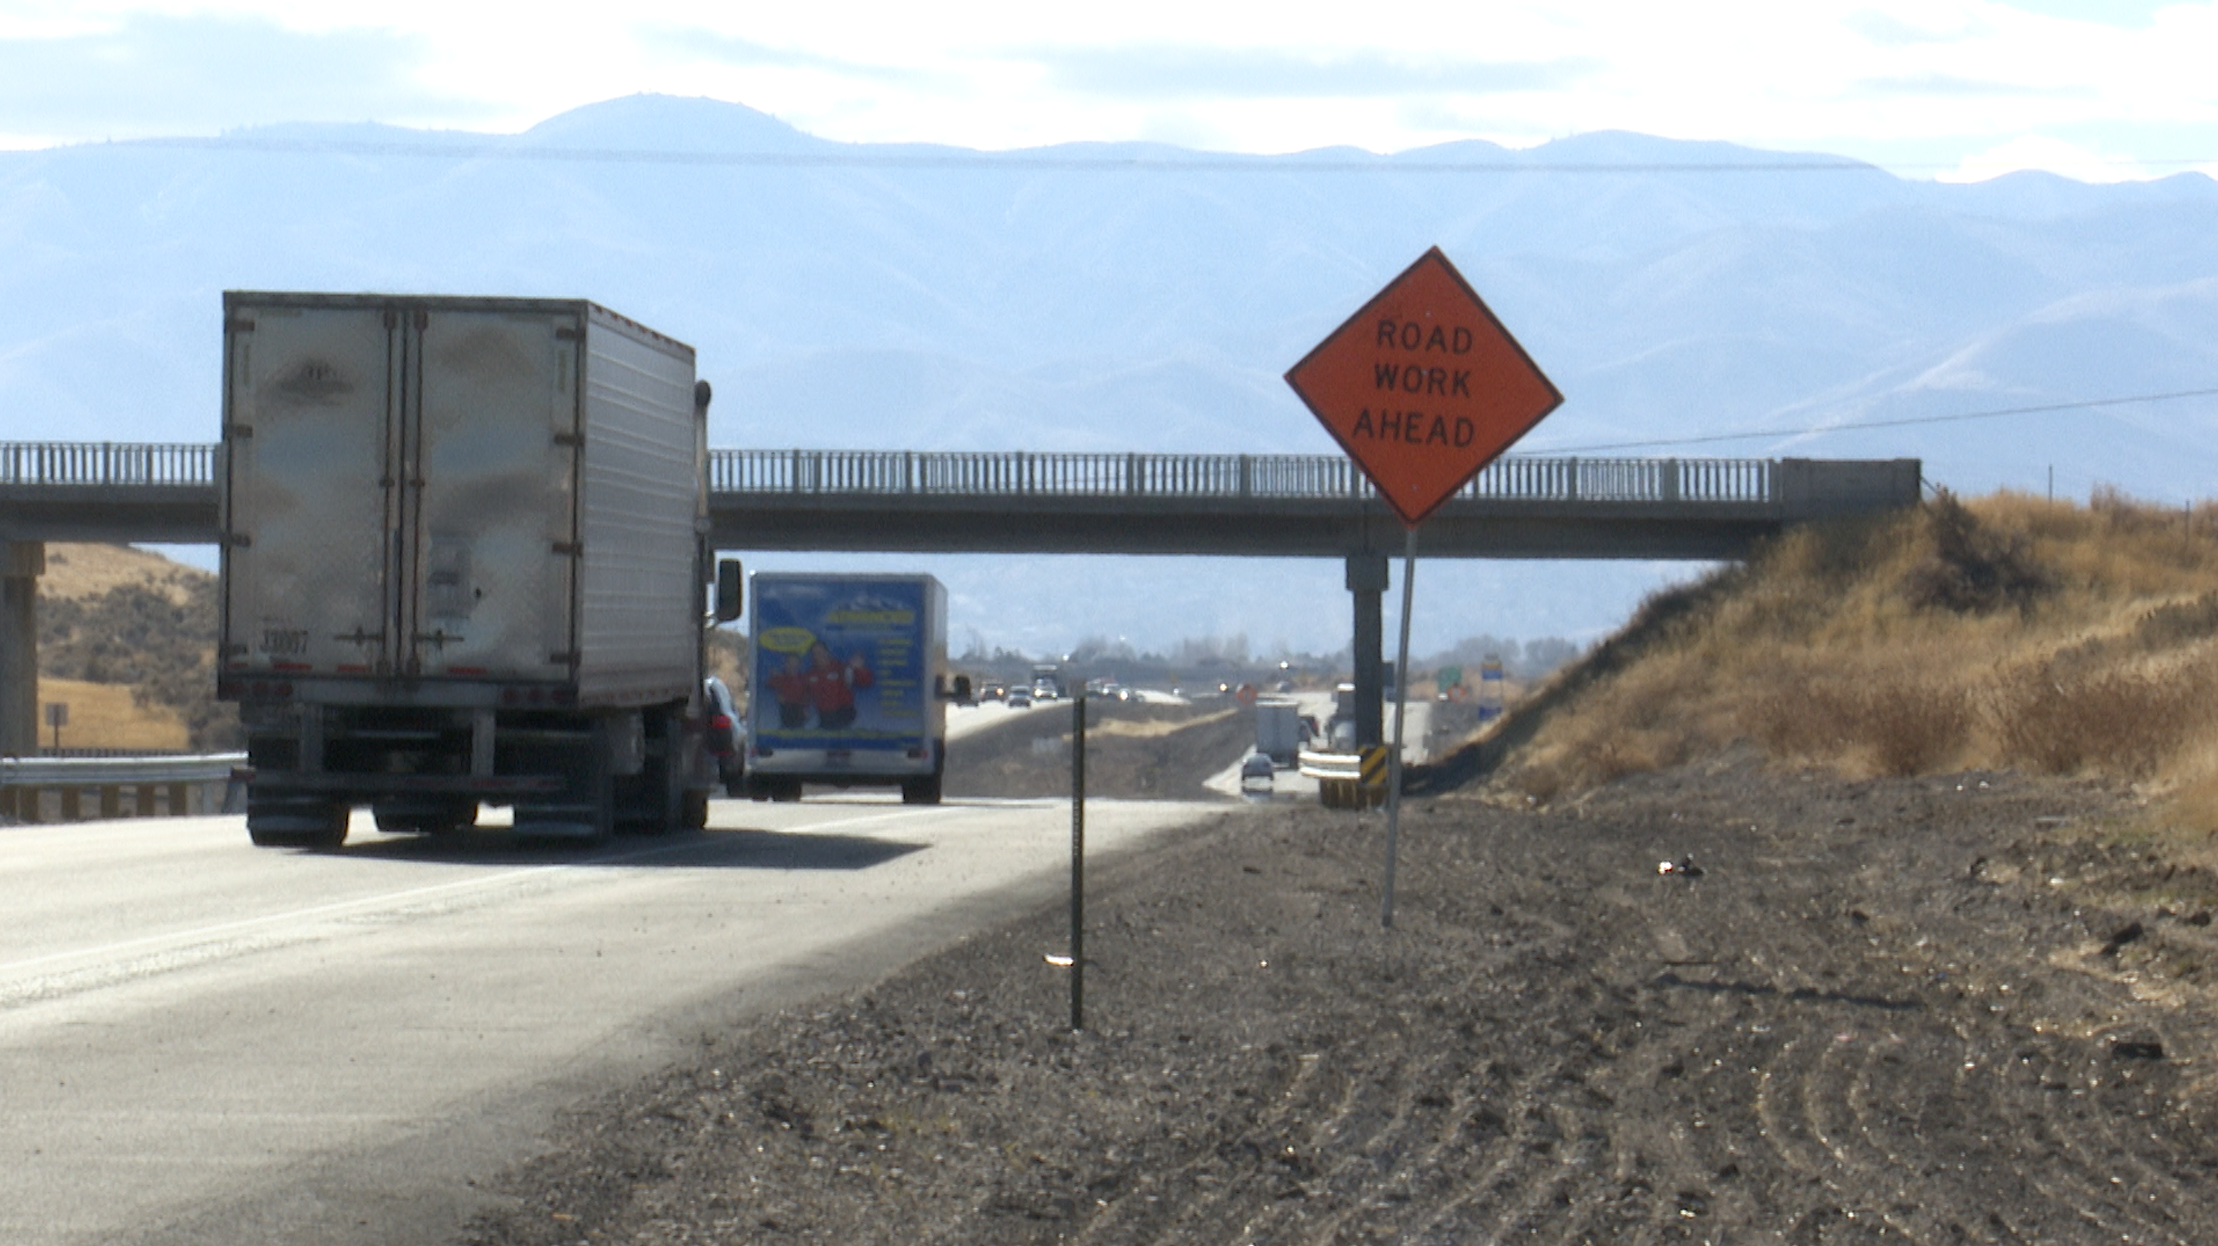 Trucks travel on I-15 near active construction.